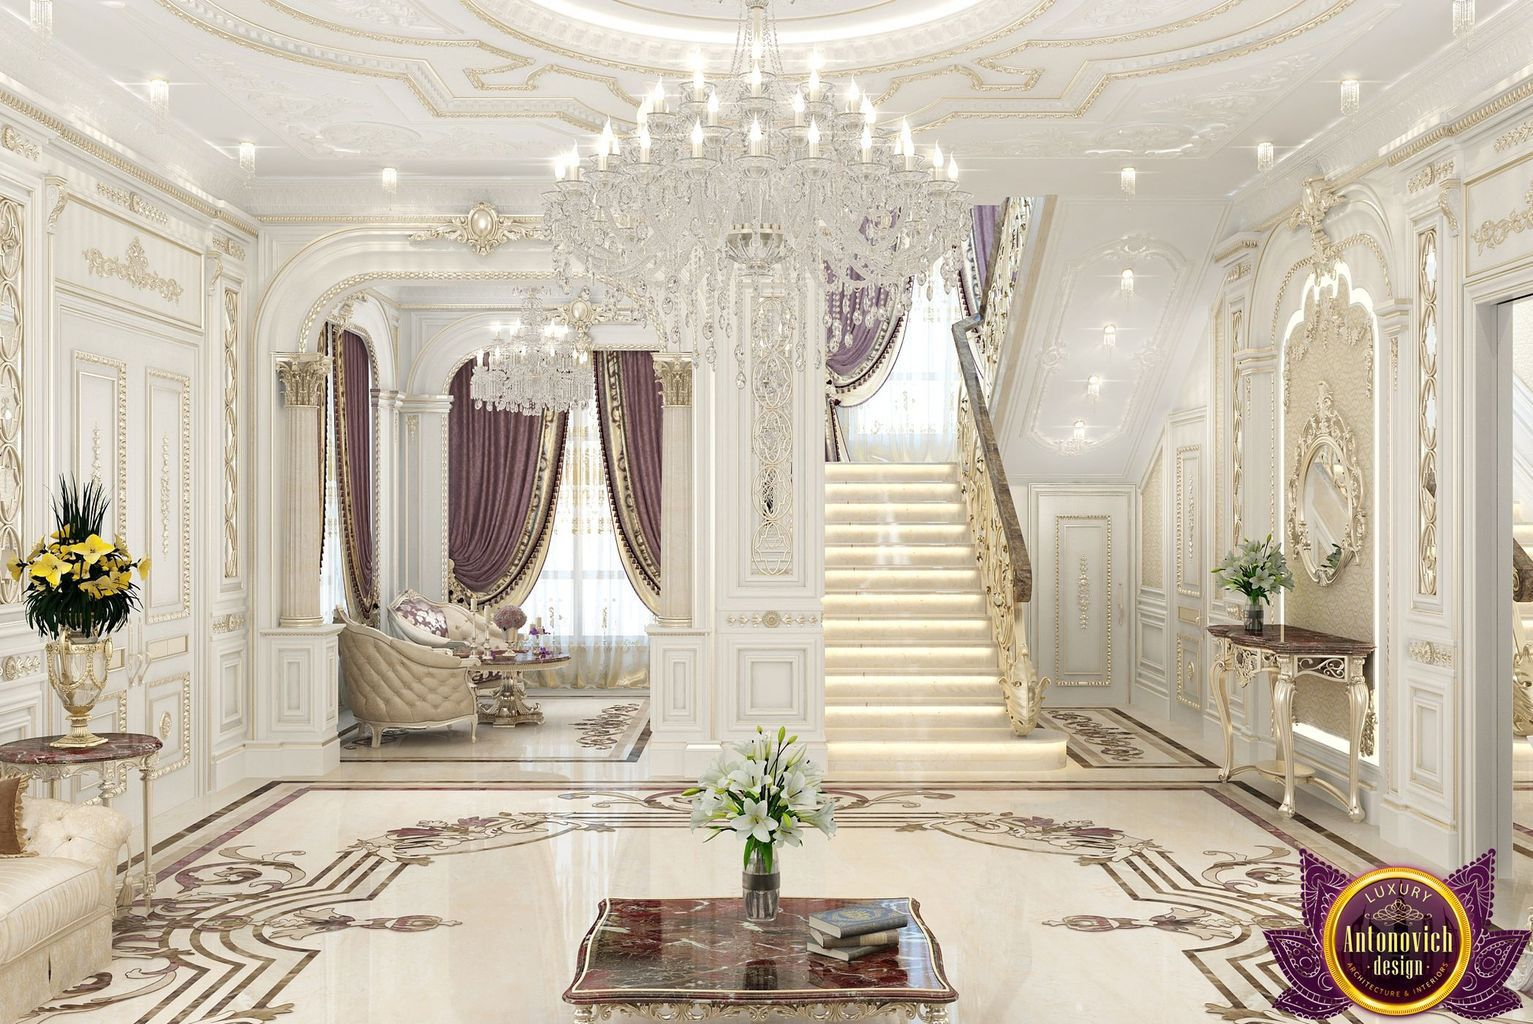 Perfect Most Beautiful House Interiors From Katrina Antonovich